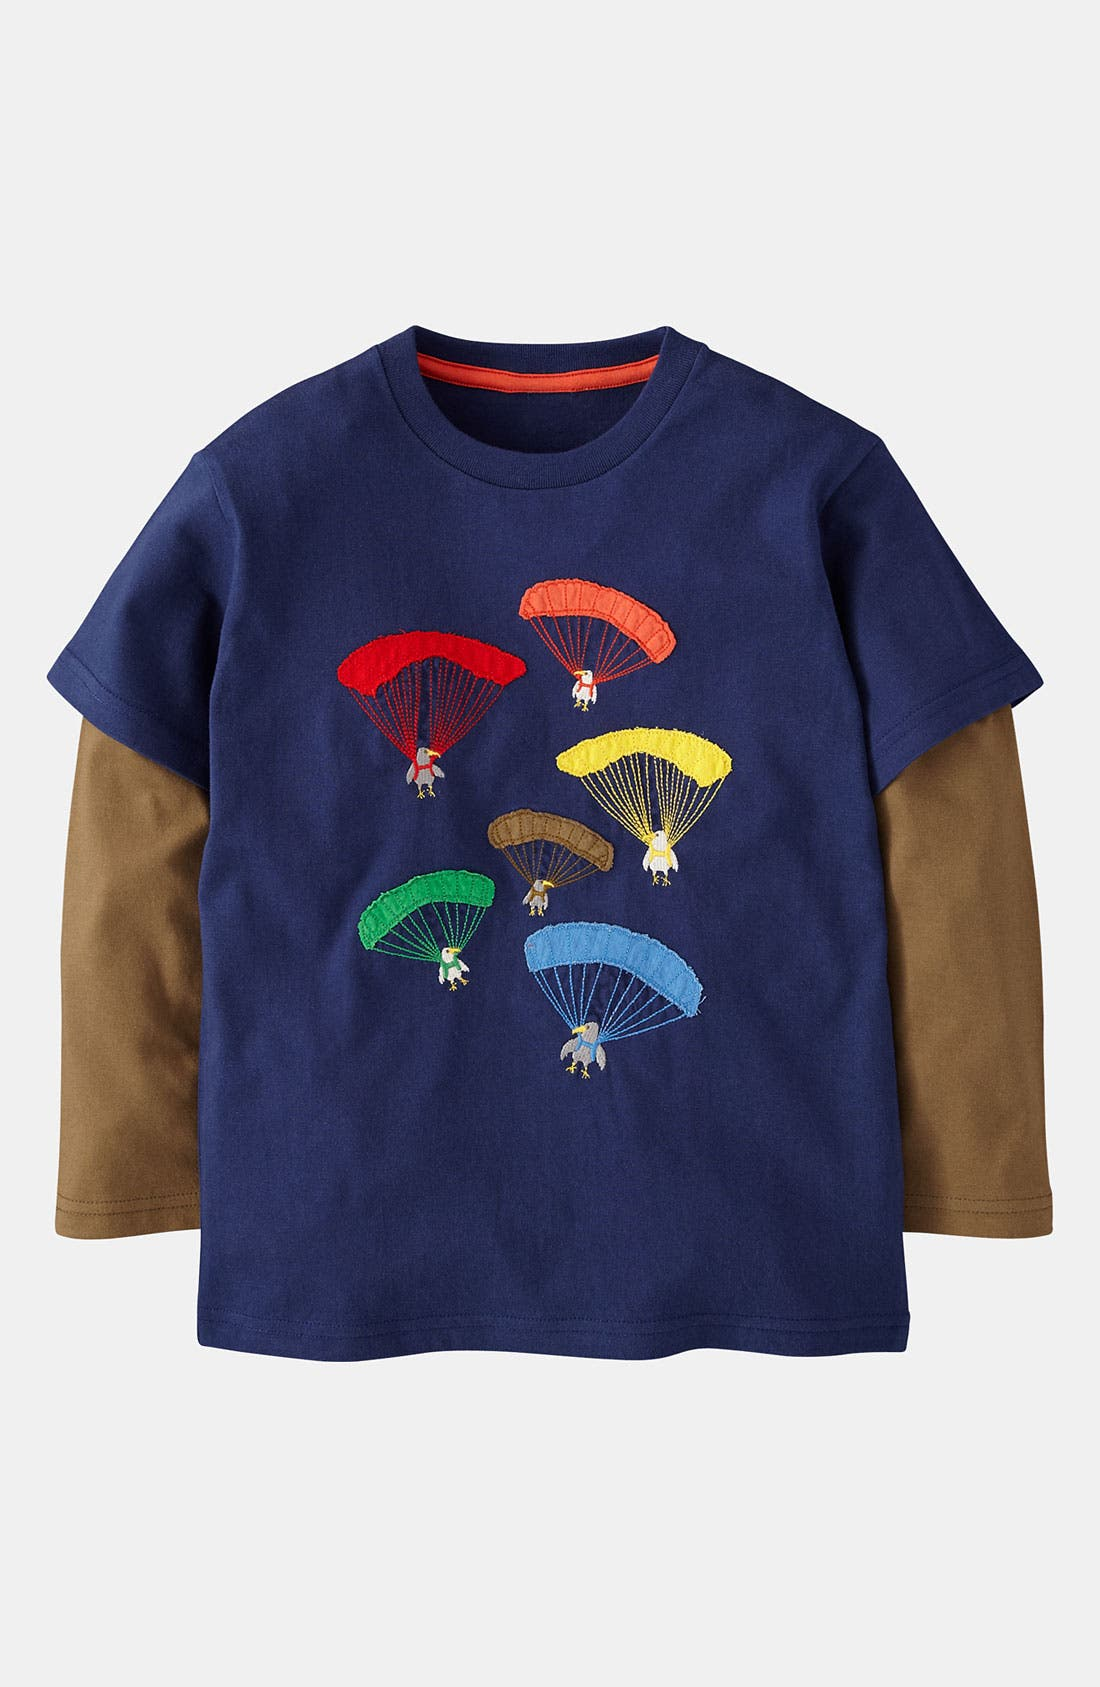 Alternate Image 1 Selected - Mini Boden 'Colorblast' T-Shirt (Toddler)